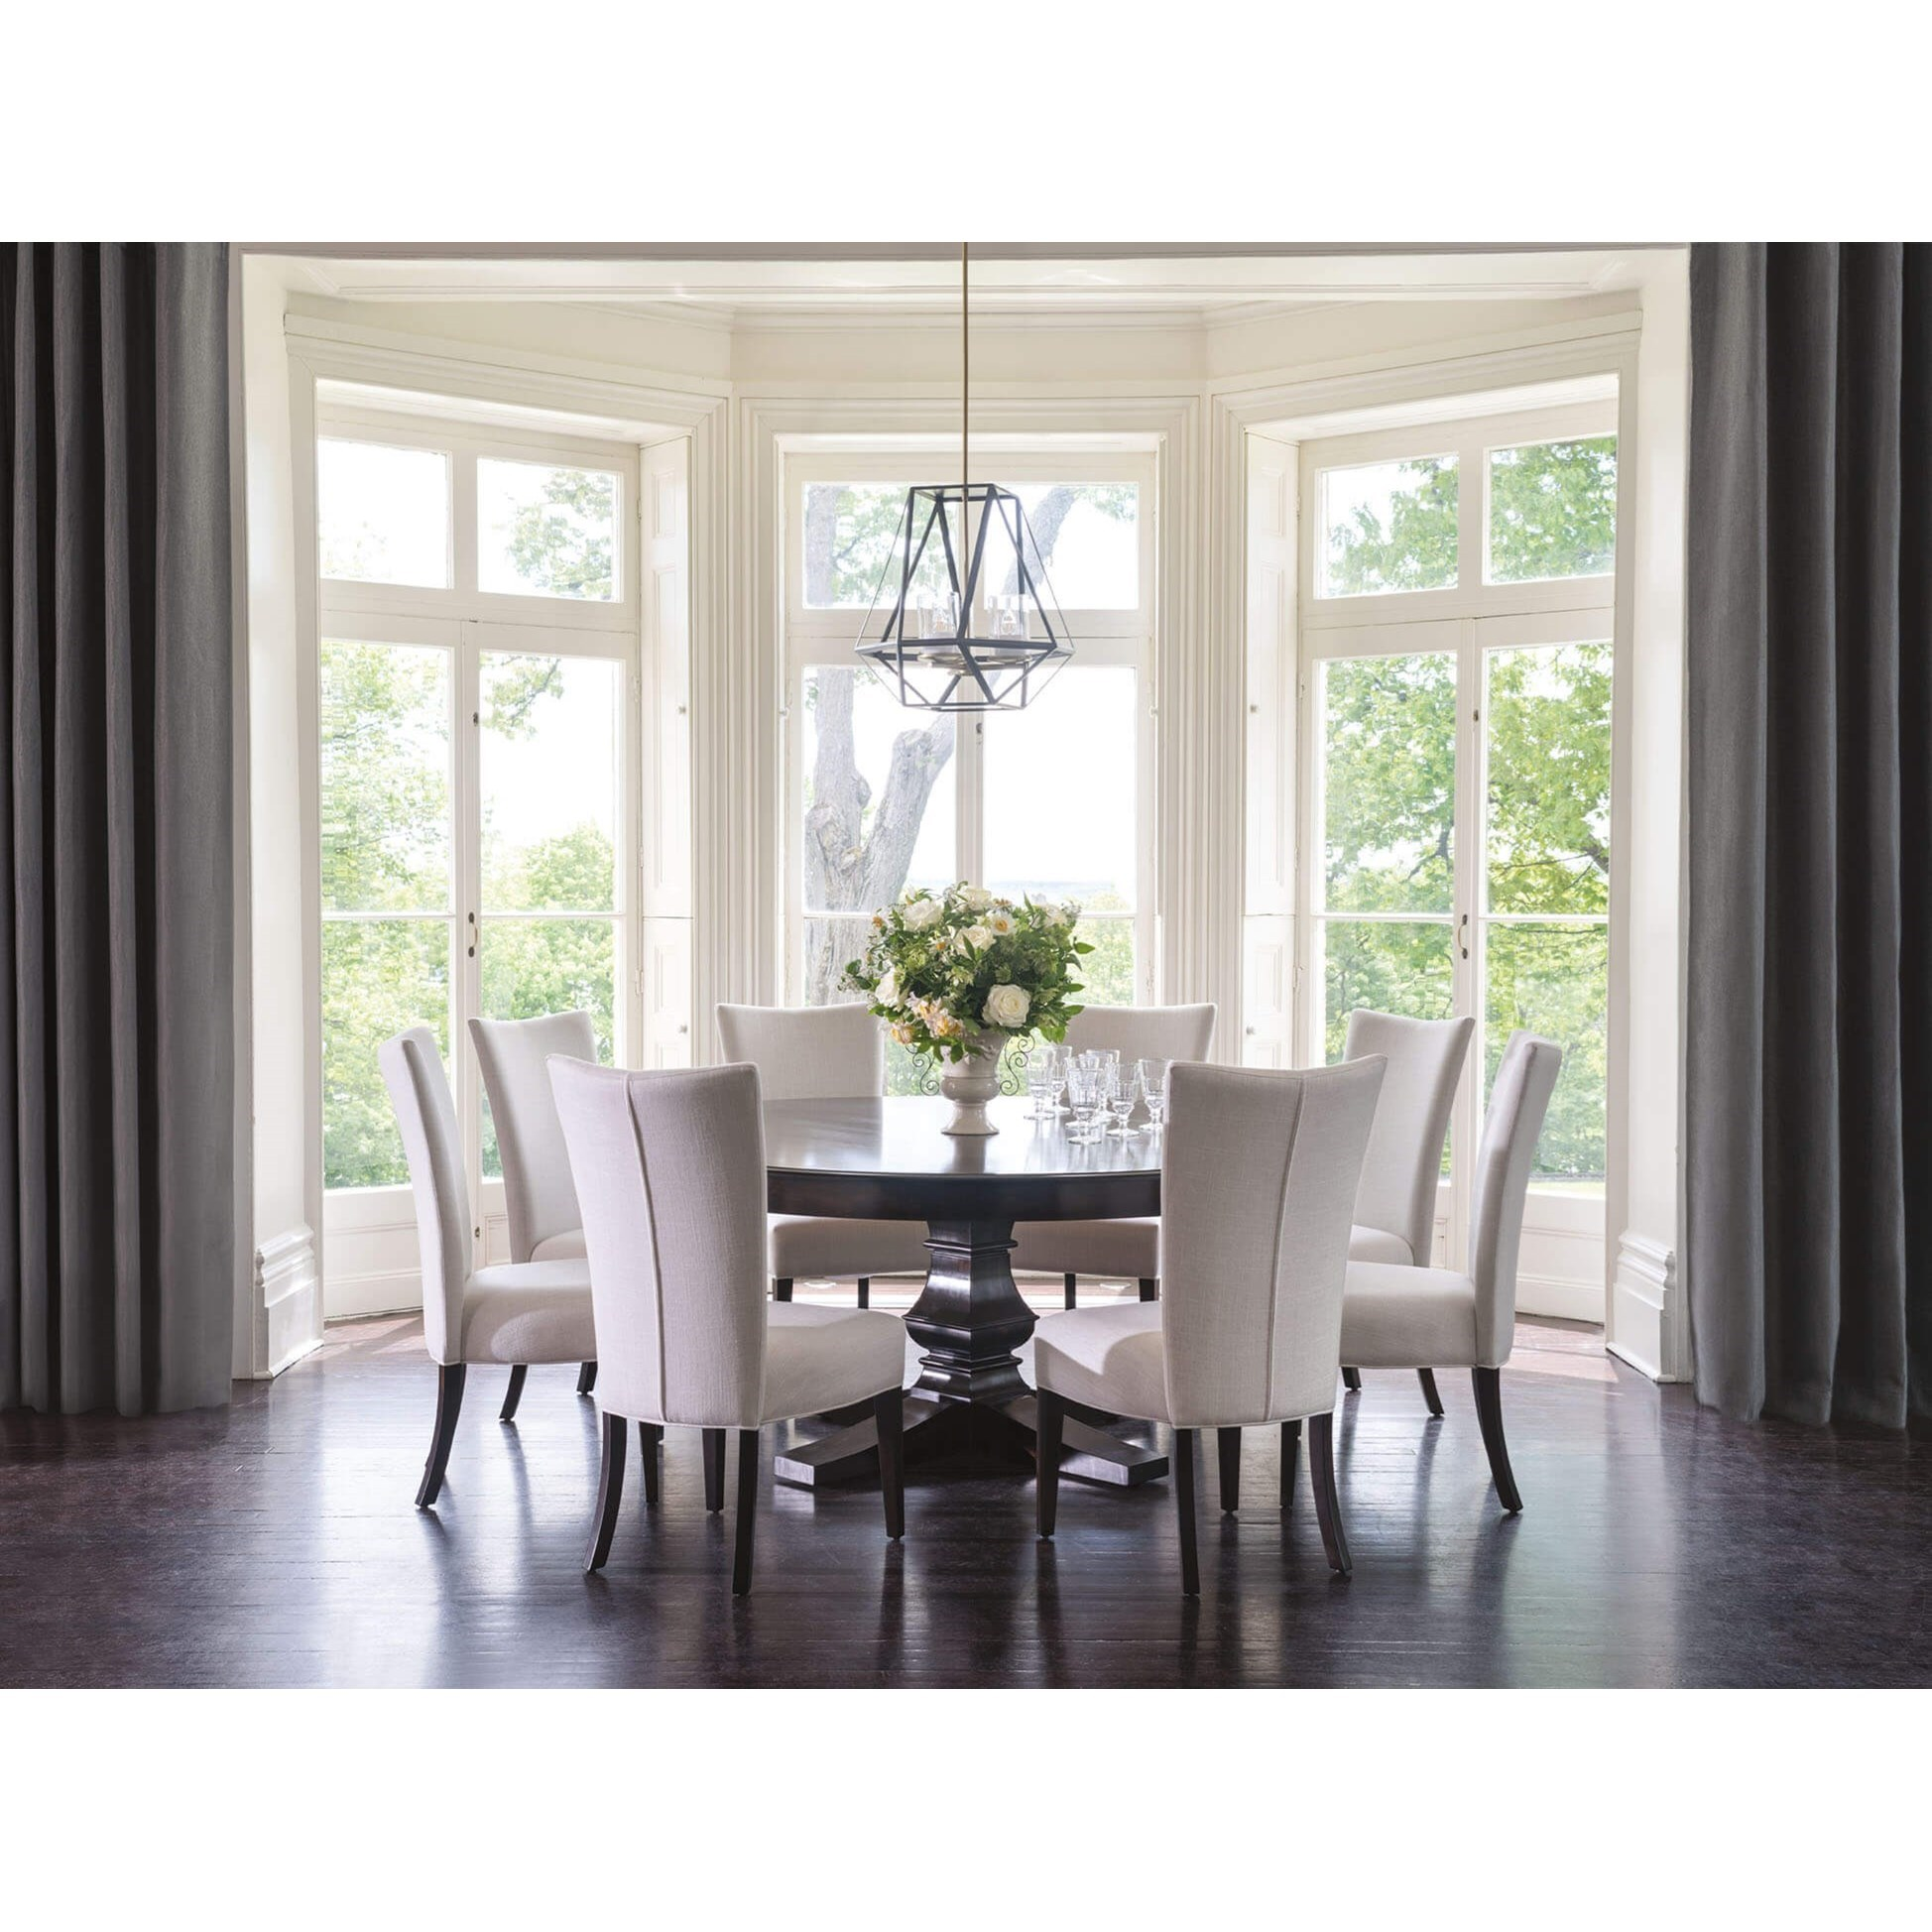 canadel classic 9 piece 72 round dining table set godby home furnishings dining 7 or more. Black Bedroom Furniture Sets. Home Design Ideas